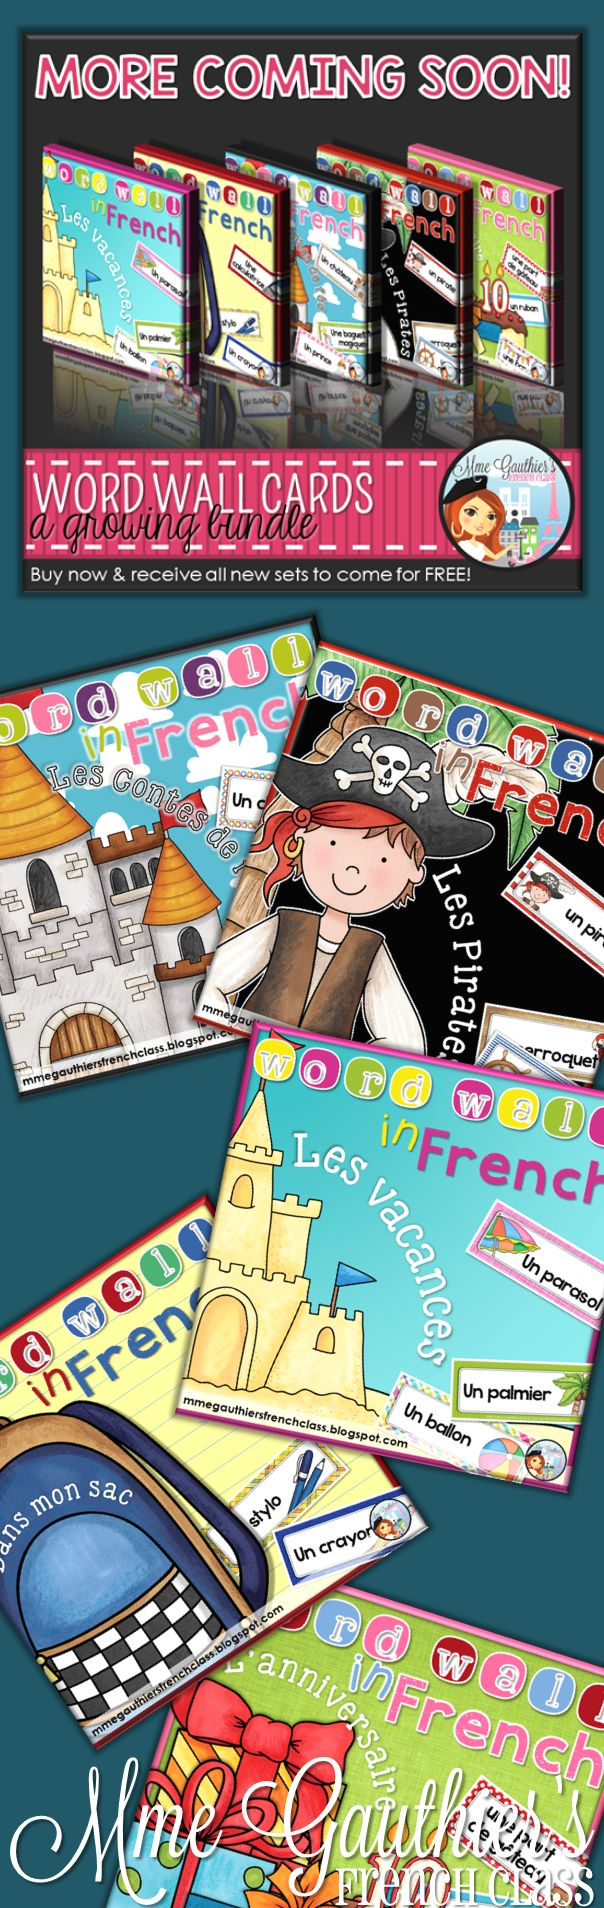 French Word Wall Growing Bundle | Already 93 pages & more still to come! Themes so far included: Fairytales, Pirates, Vacation, Back to School and Birthdays